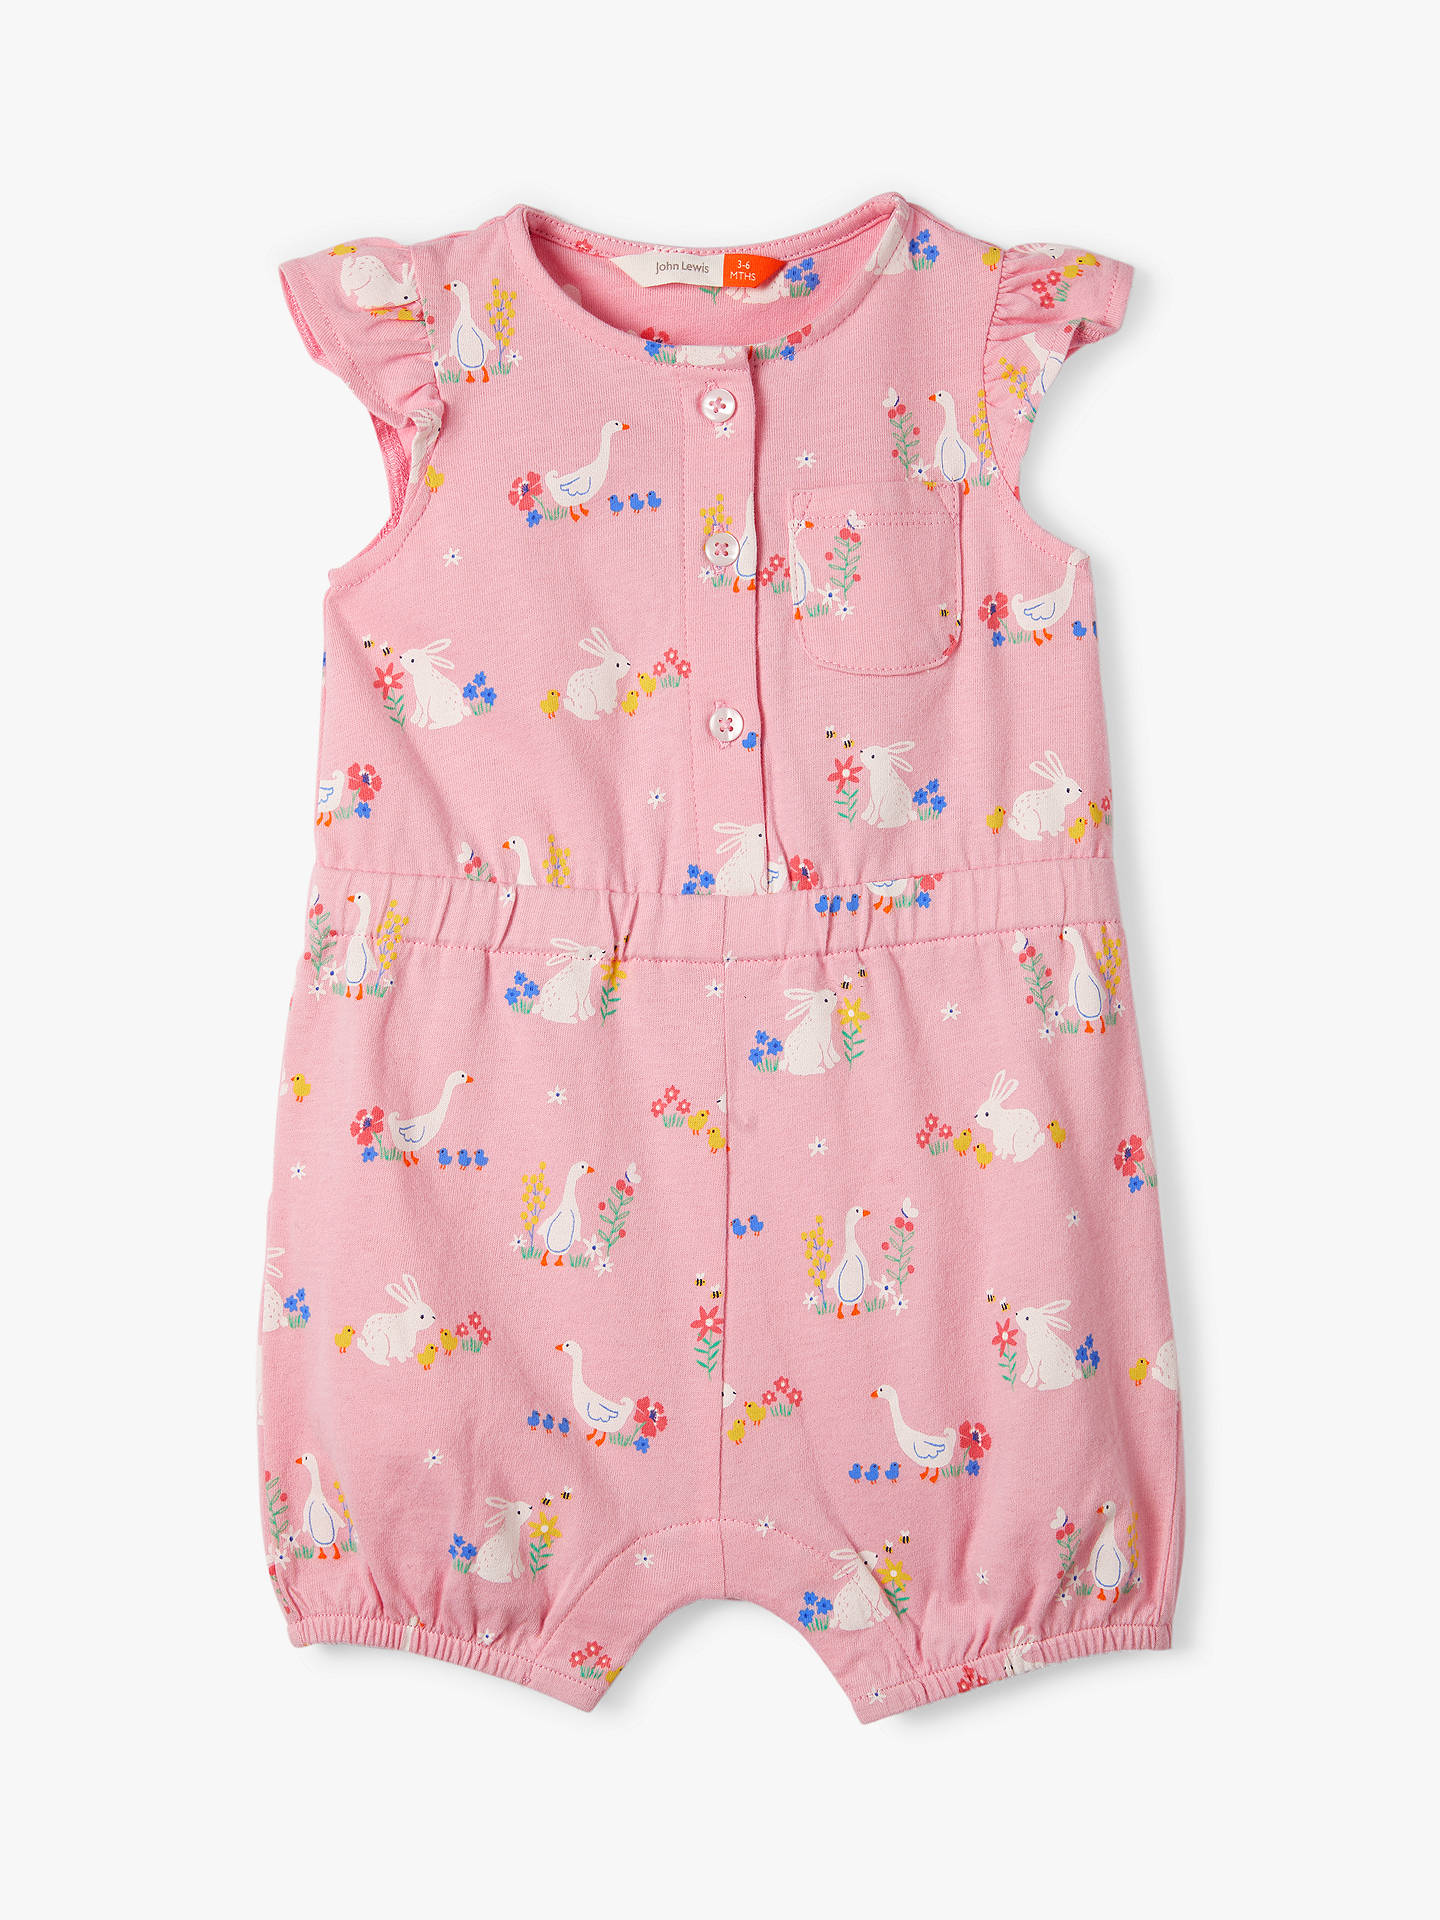 5e6496cc4c13 Buy John Lewis   Partners Baby Easter Friends Romper